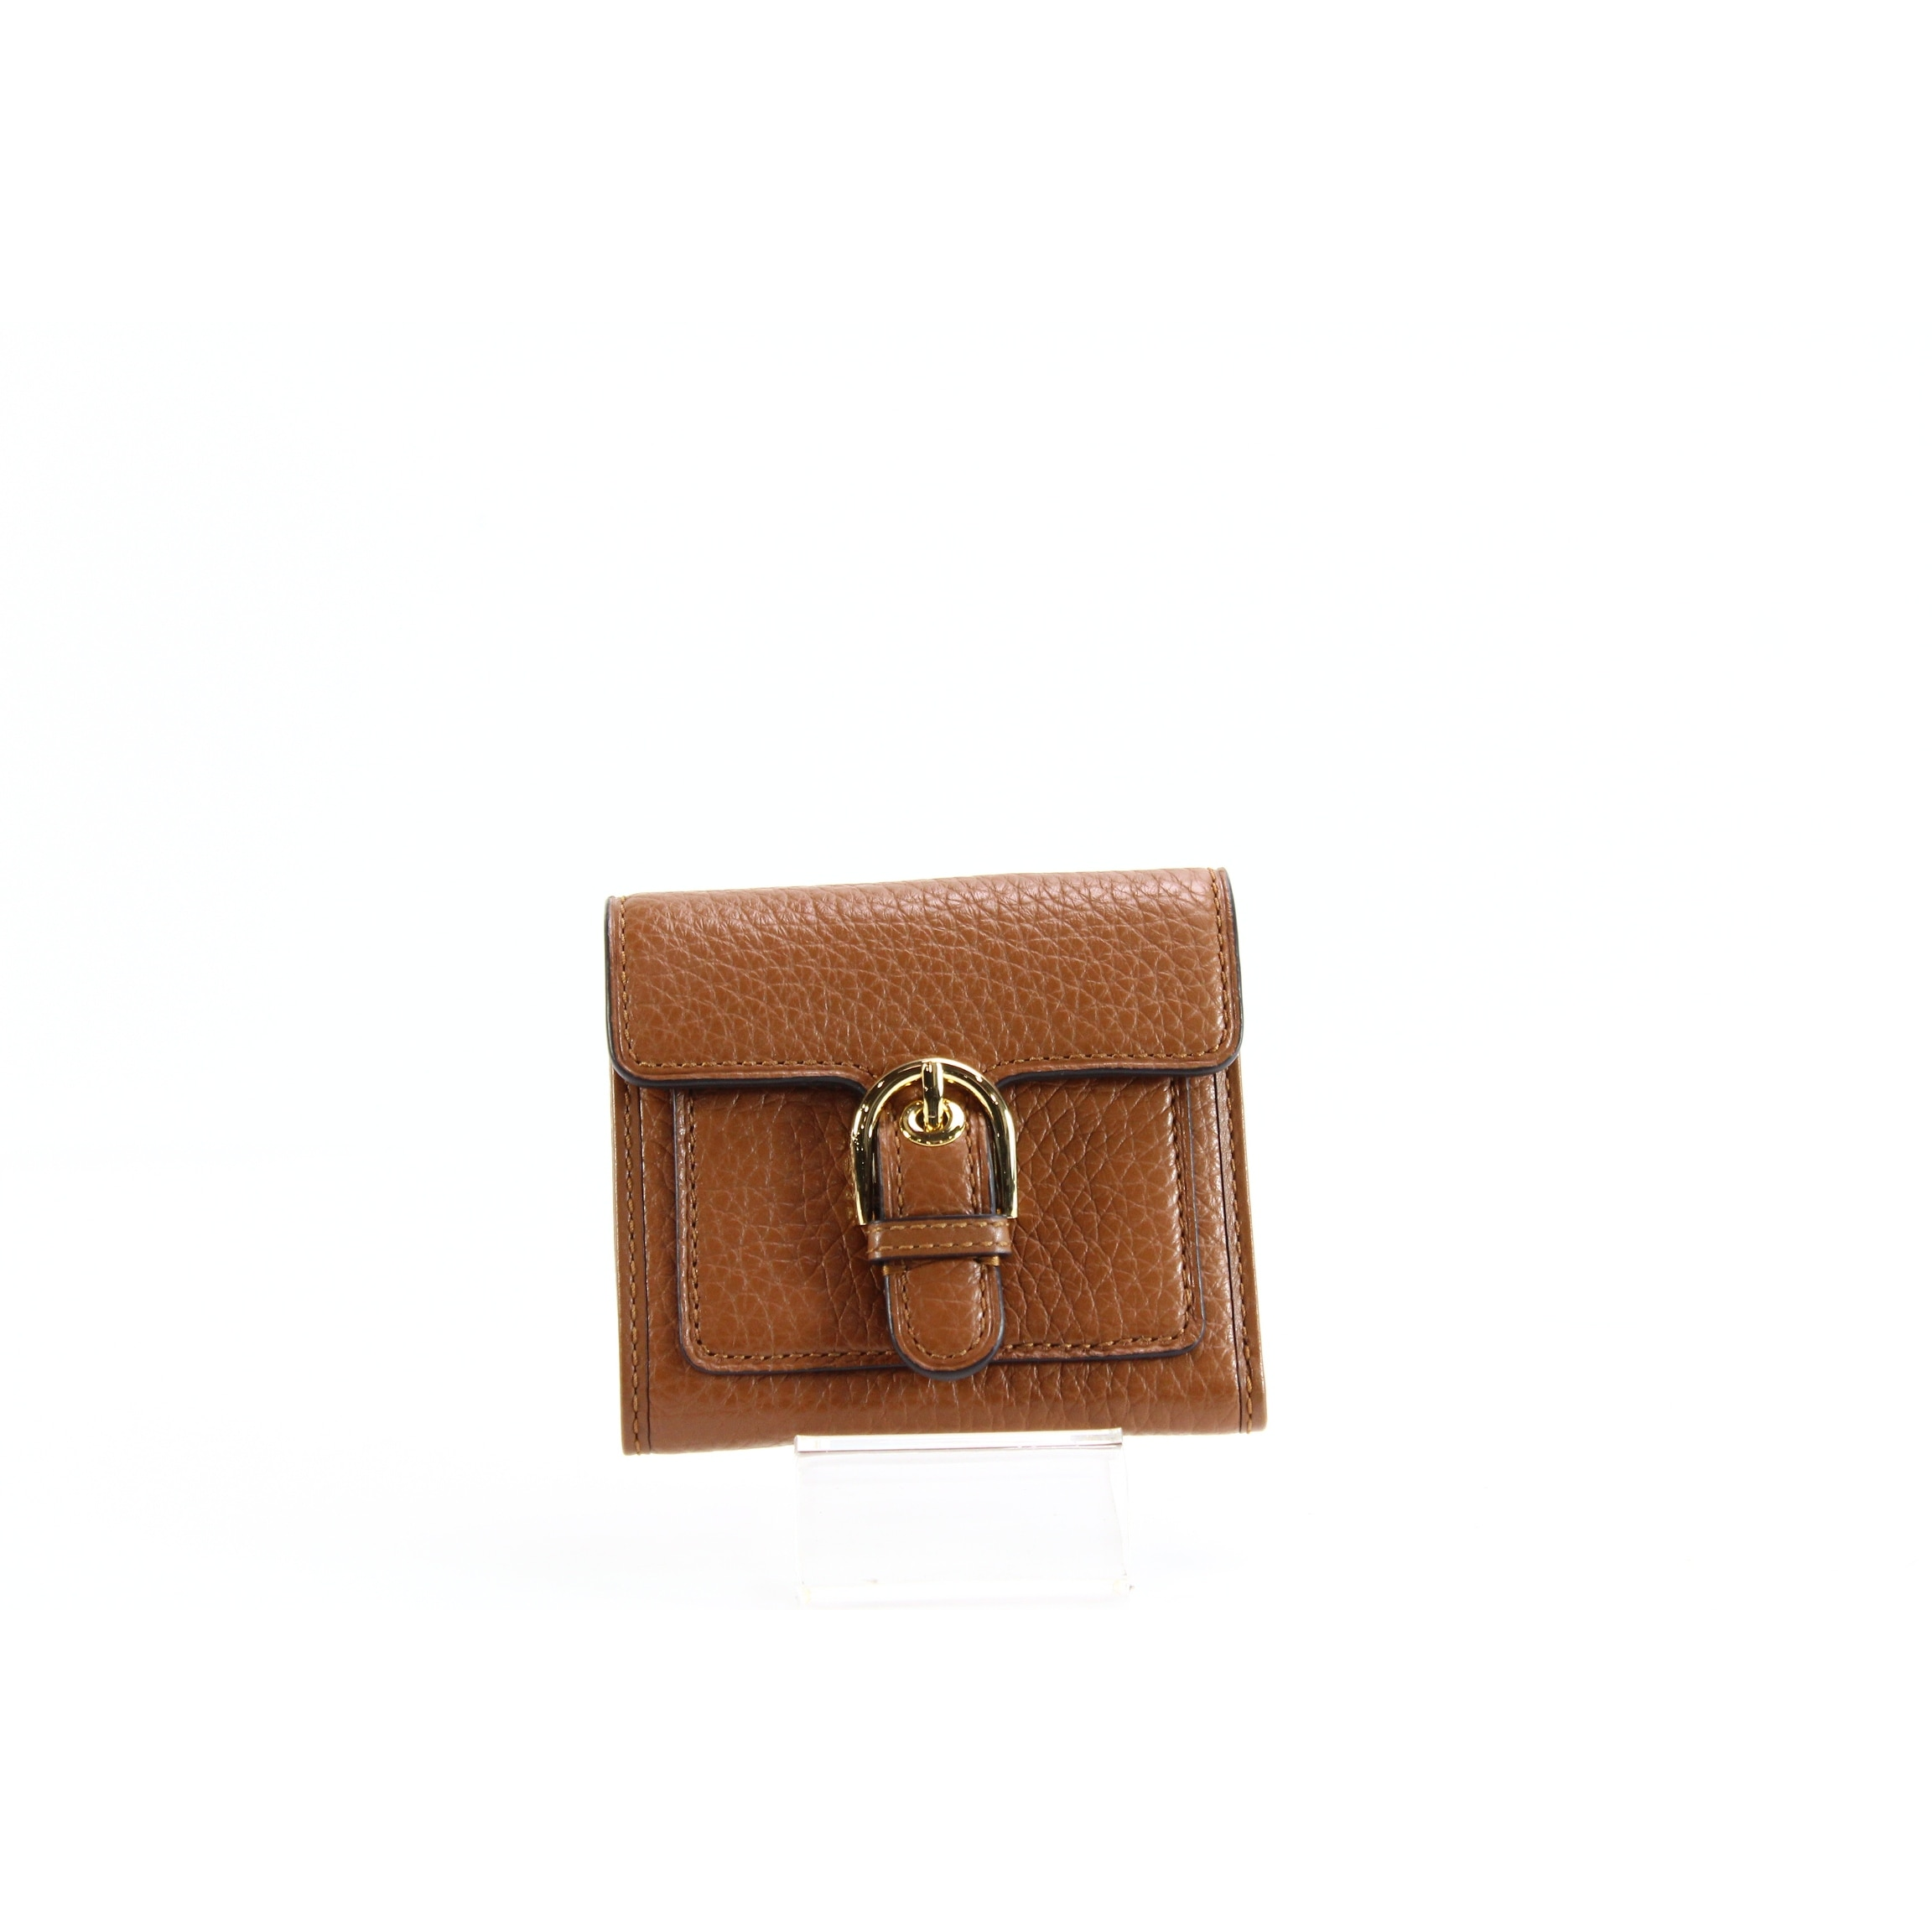 2dac16eda60b Shop Michael Kors NEW Brown Luggage Cooper Bifold Leather Carryall Wallet -  Free Shipping Today - Overstock - 20754090